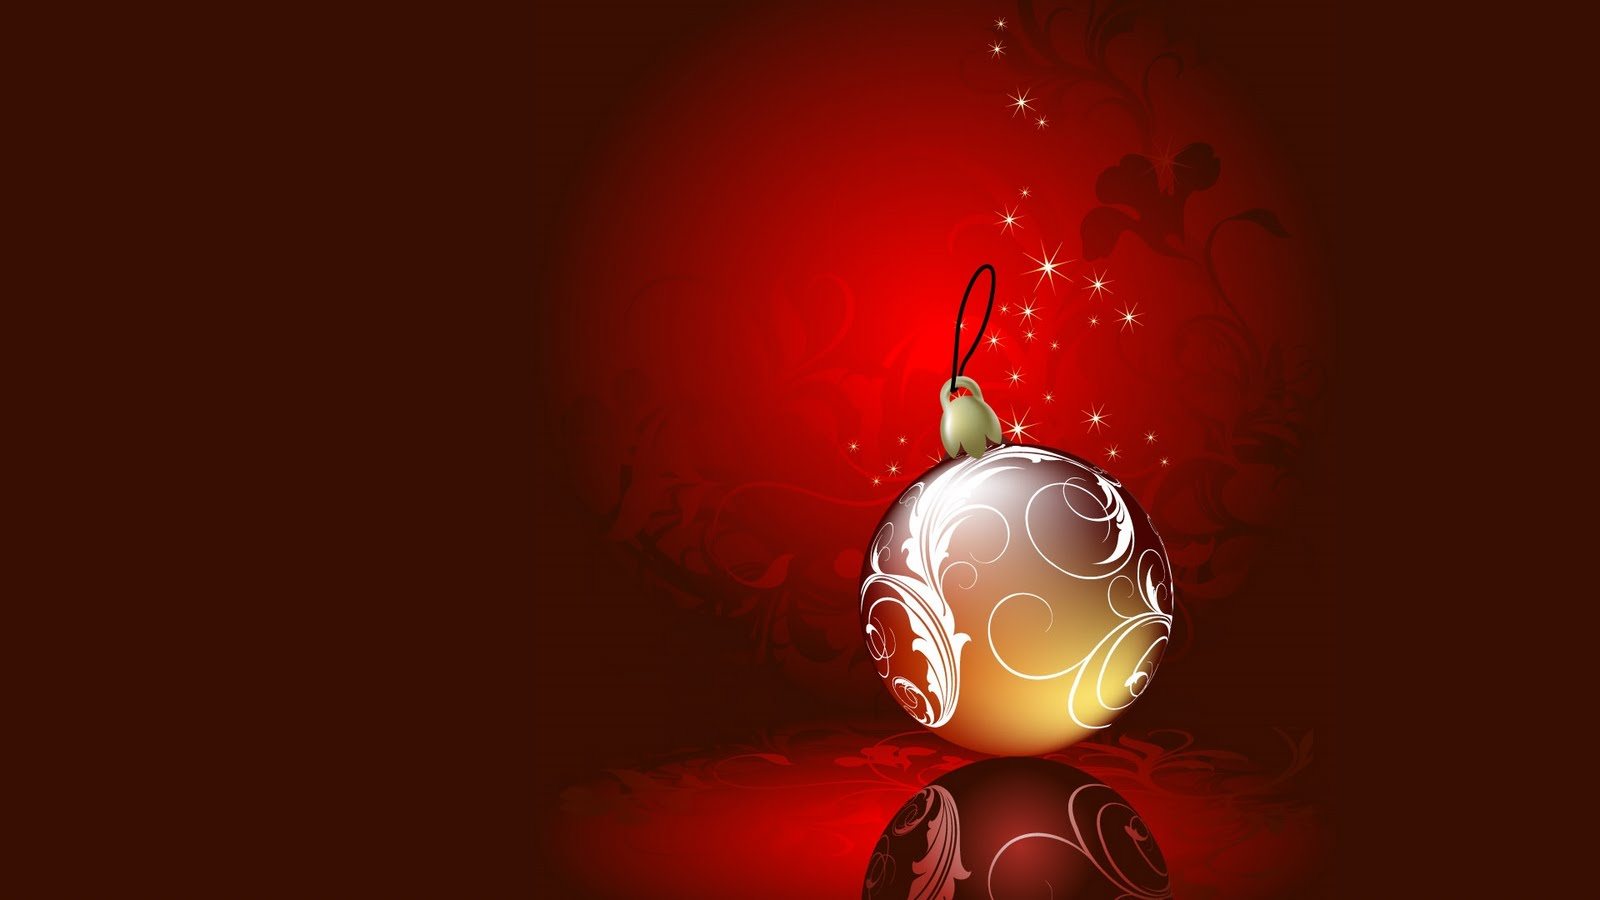 Christmas Ball Ornaments Hd Desktop Wallpaper 1600x900